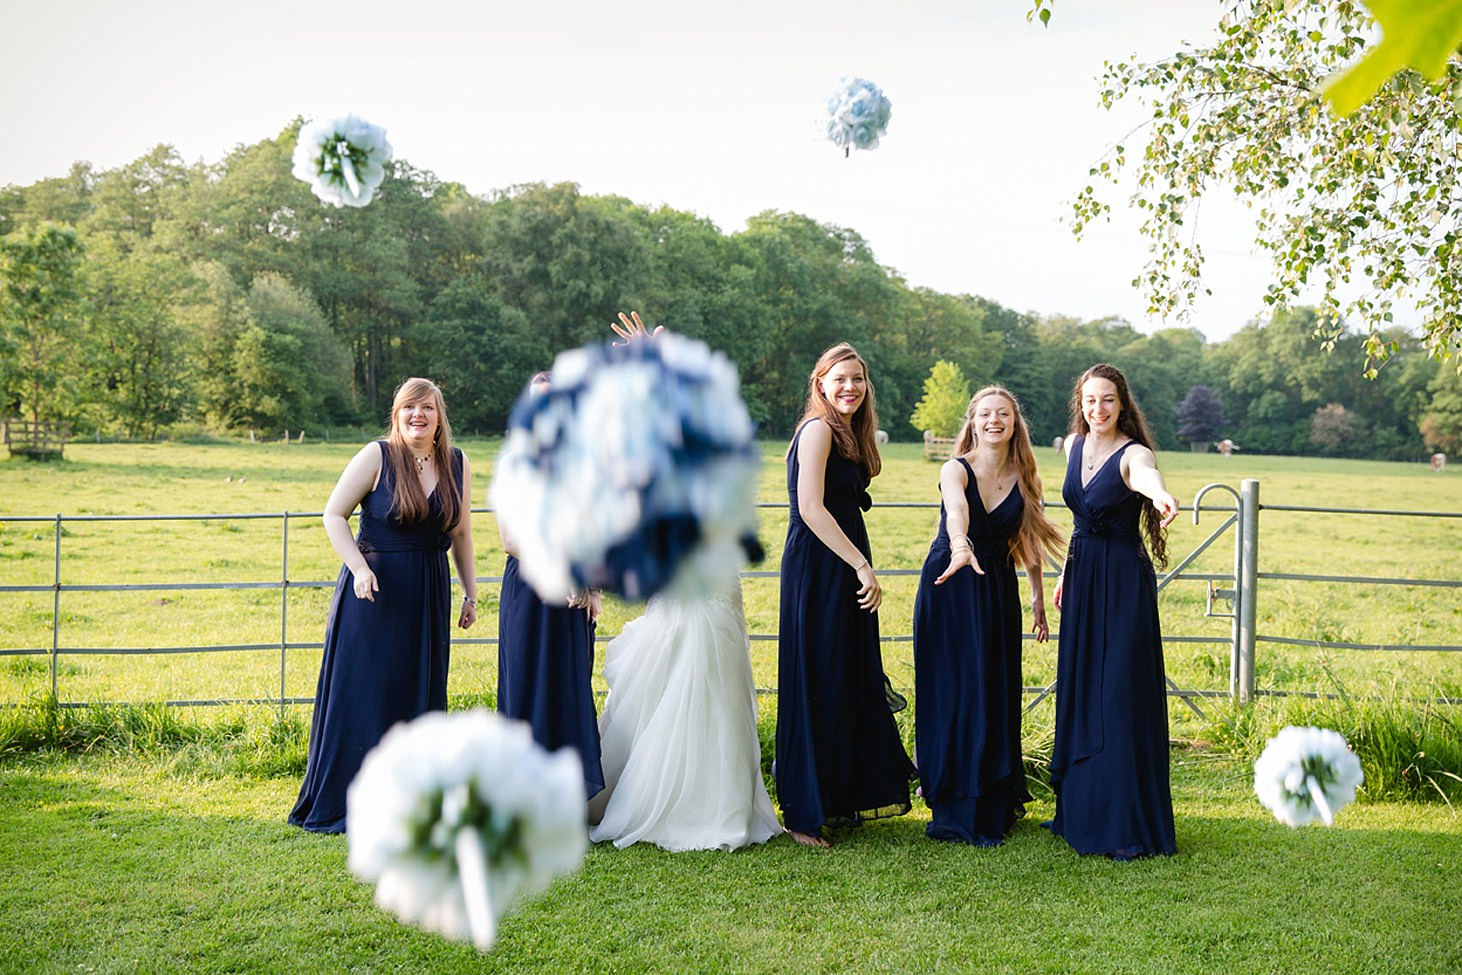 gate street barn wedding photography bride and bridesmaids throwing bouquets